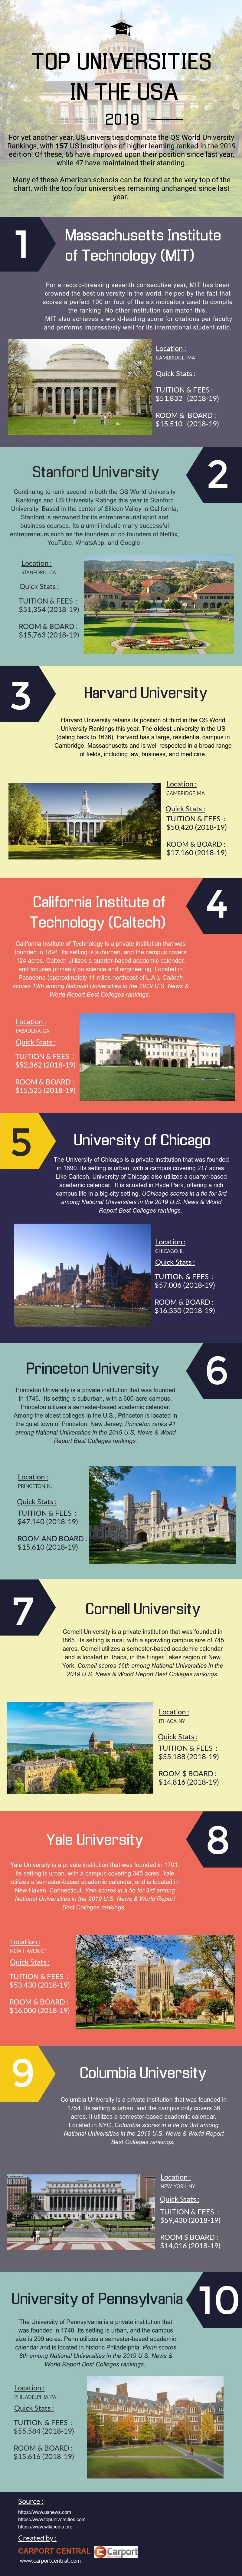 The Top 10 US Universities as per QS World University Rankings 2019 - Infographic